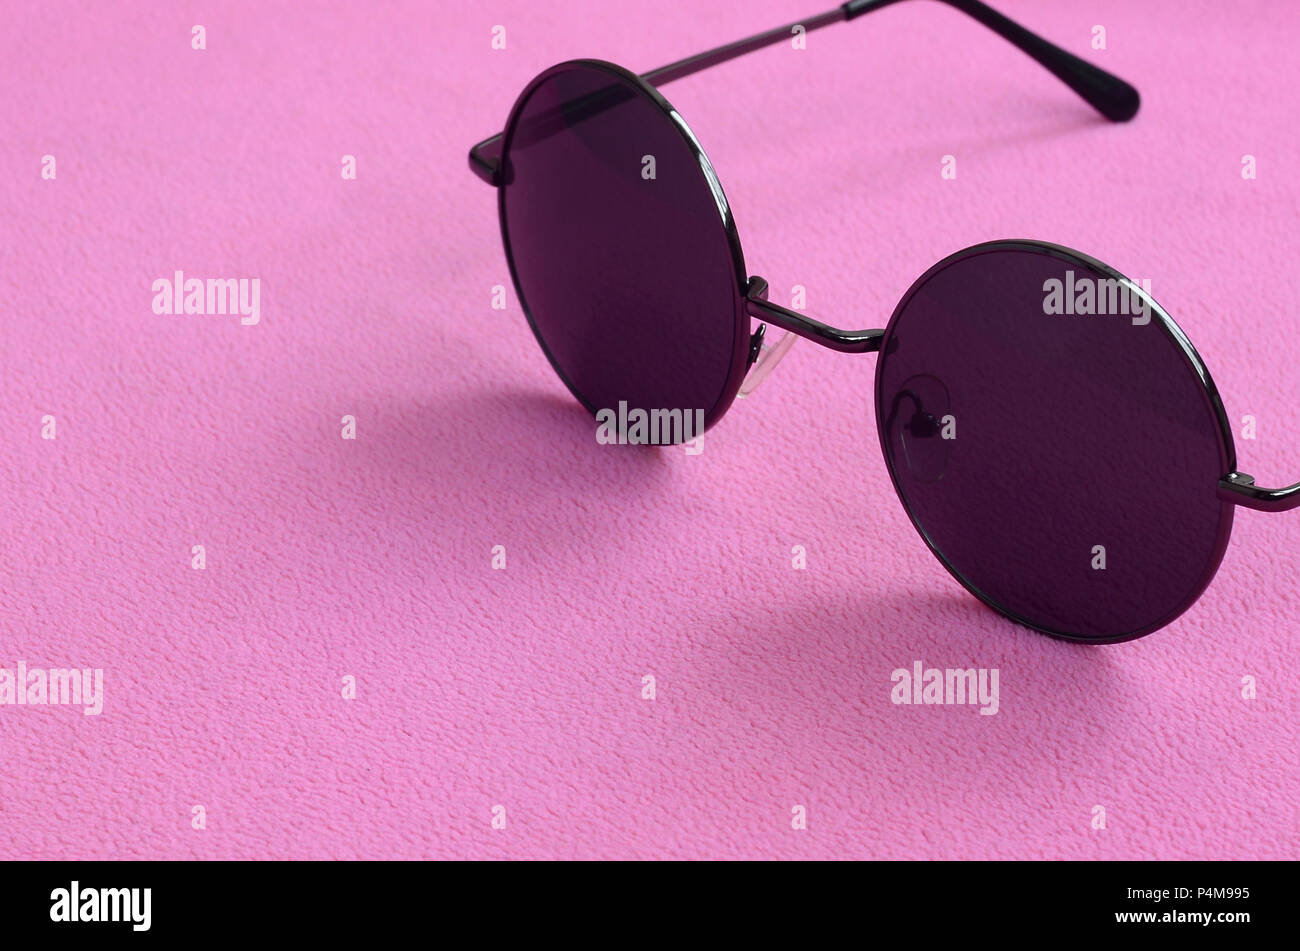 1ca55fc049f Stylish black sunglasses with round glasses lies on a blanket made of soft  and fluffy light